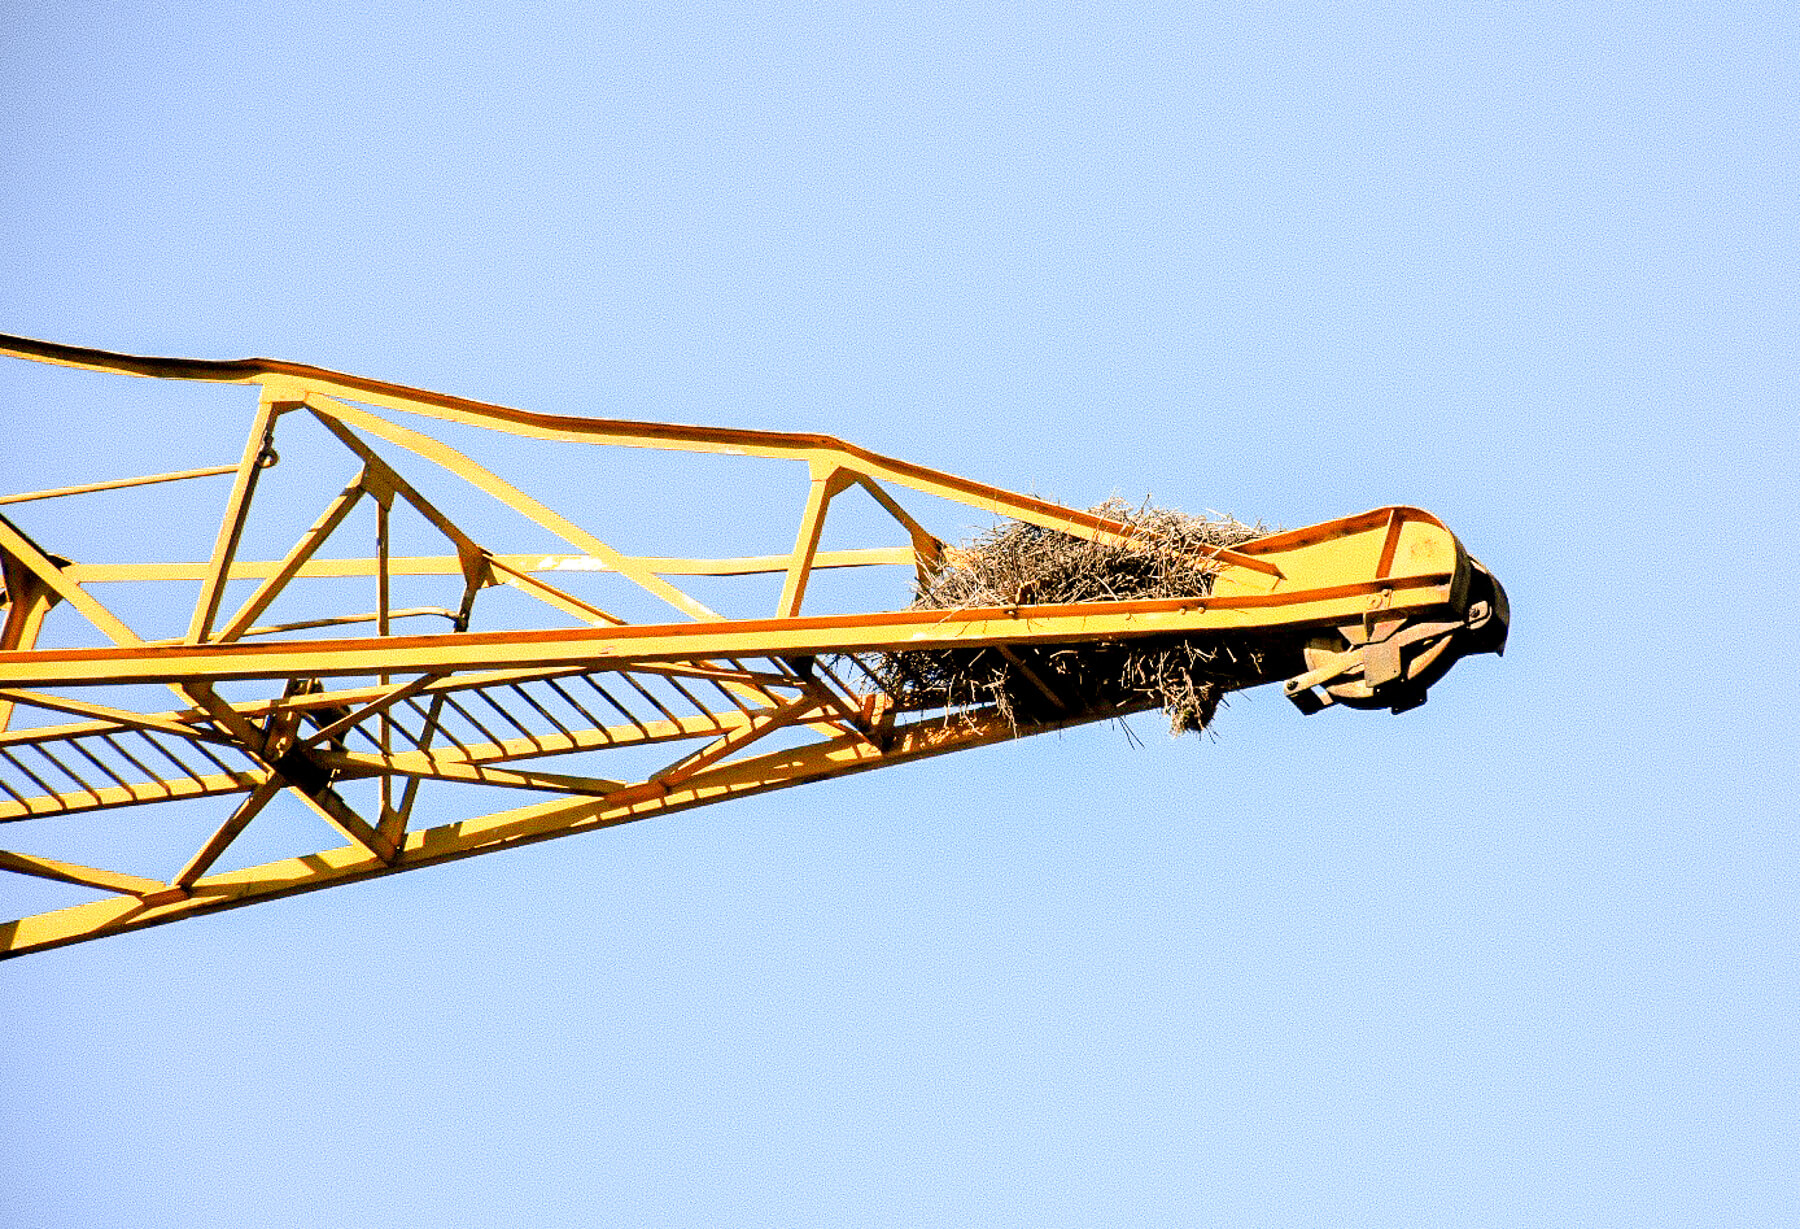 The top of a huge yellow crane with a big bird next at the tip